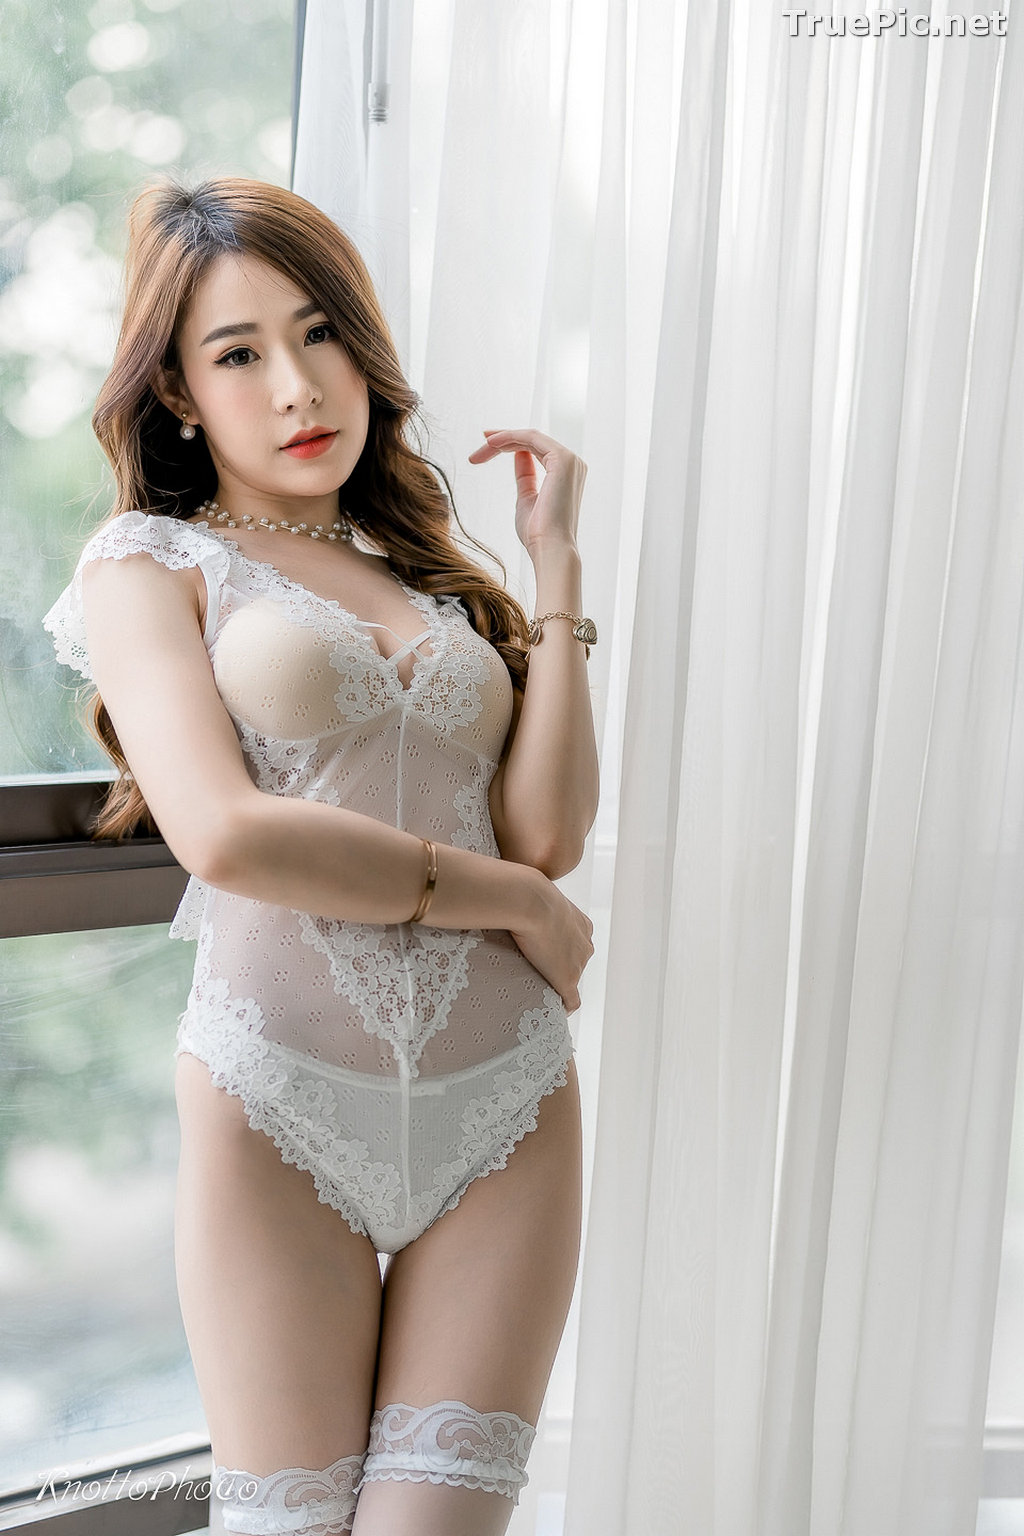 Image Thailand Hot Beauty Model - Thipsuda Jitaree - White Lace Underwear - TruePic.net - Picture-5